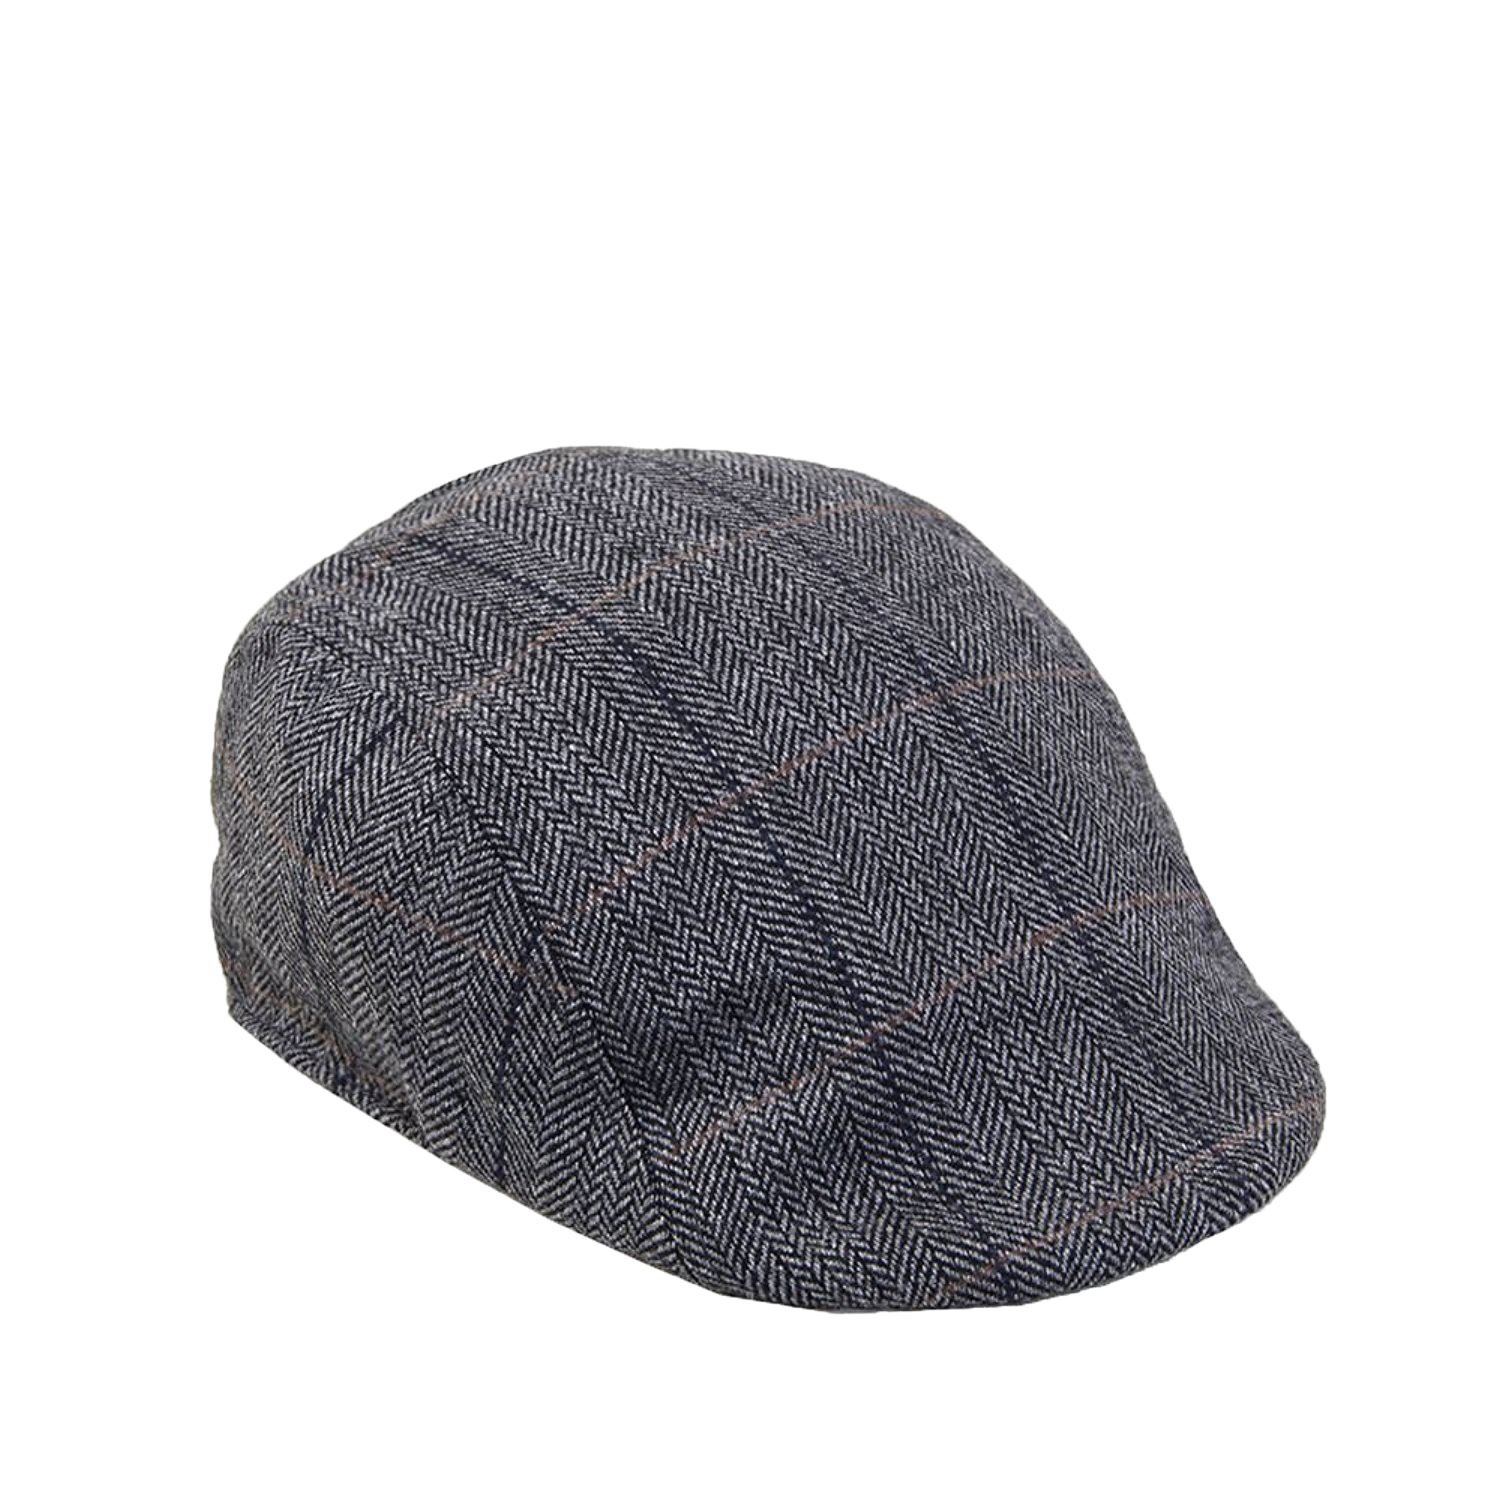 215a317044c Marc Darcy Men s Tweed Check Print Flat Cap in Charcoal - L XL   Amazon.co.uk  Clothing